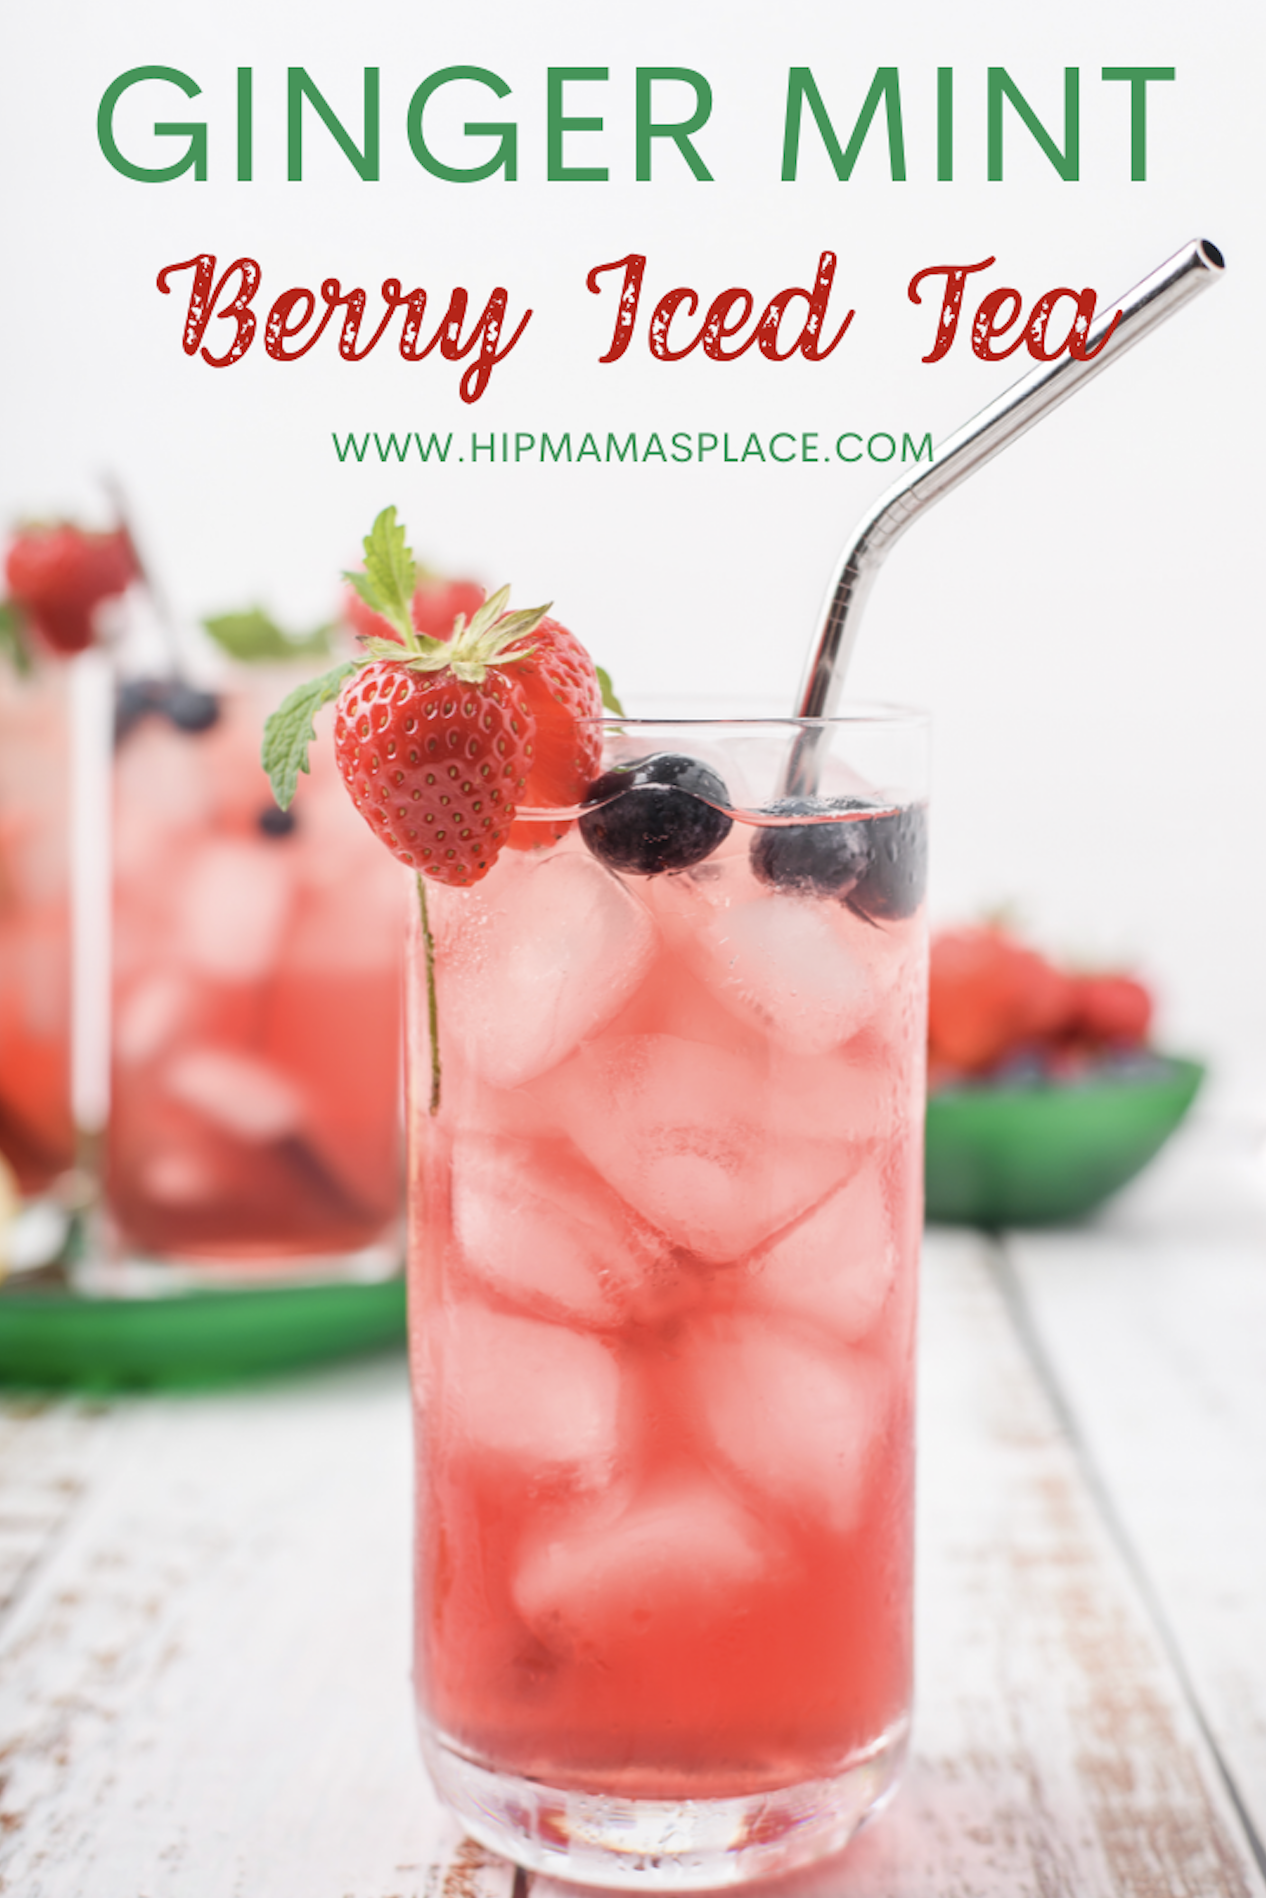 This tasty, refreshing and easy to make ginger mint berry iced tea is perfect for your next family barbecue or any get together this summer!#icedtea #summerdrink #berries #healthy #healthydrink #minttea #berrydrink #minttea #strawberries #foodies #foodblogger #yummy